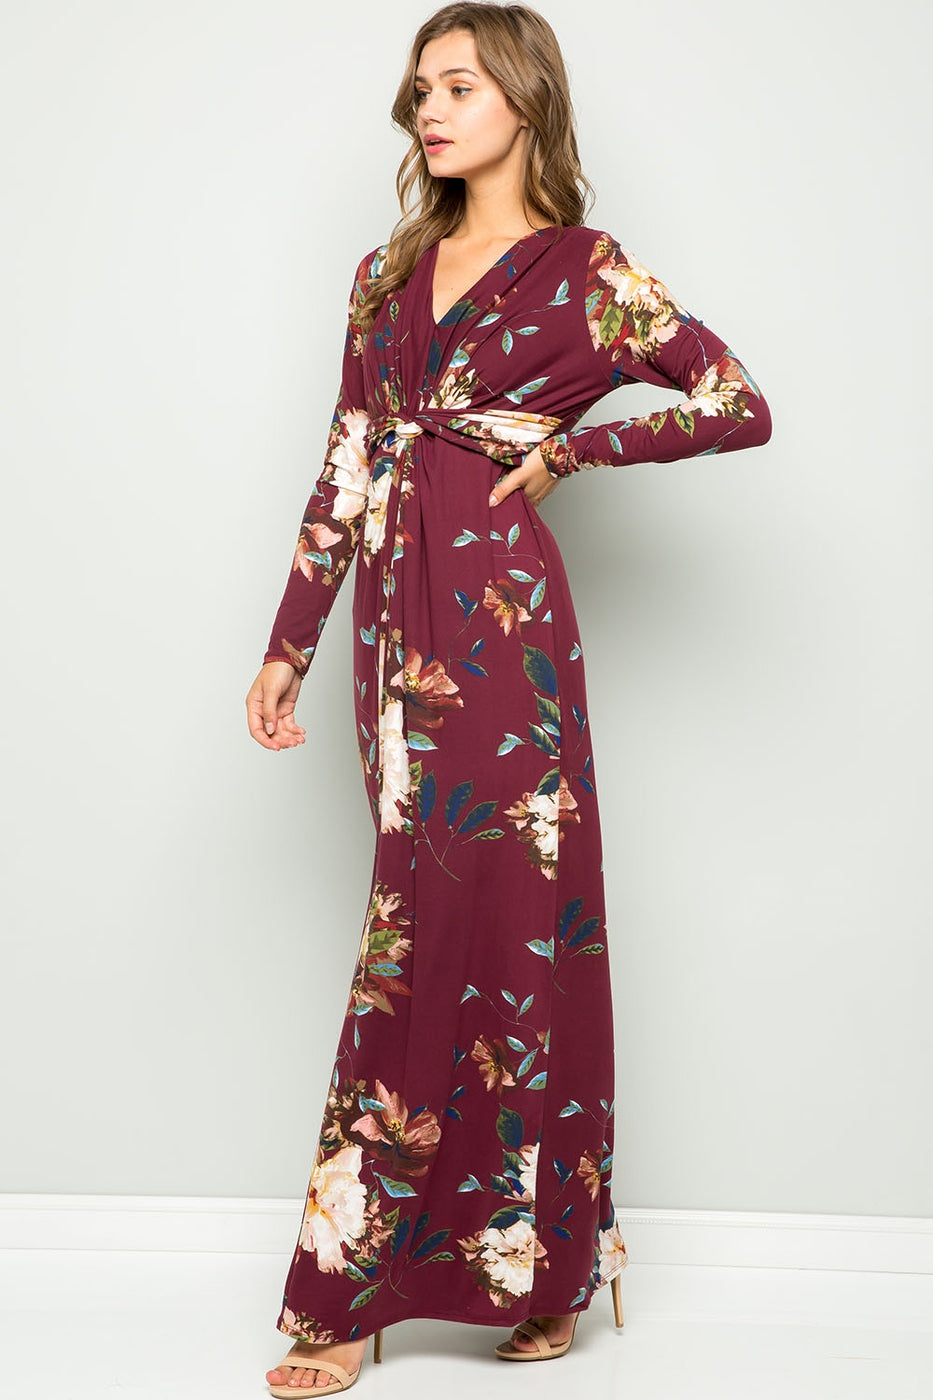 Better Than Ever Floral Maxi Dress in Burgundy - Curvy - Dress - MIA Boutique LLC